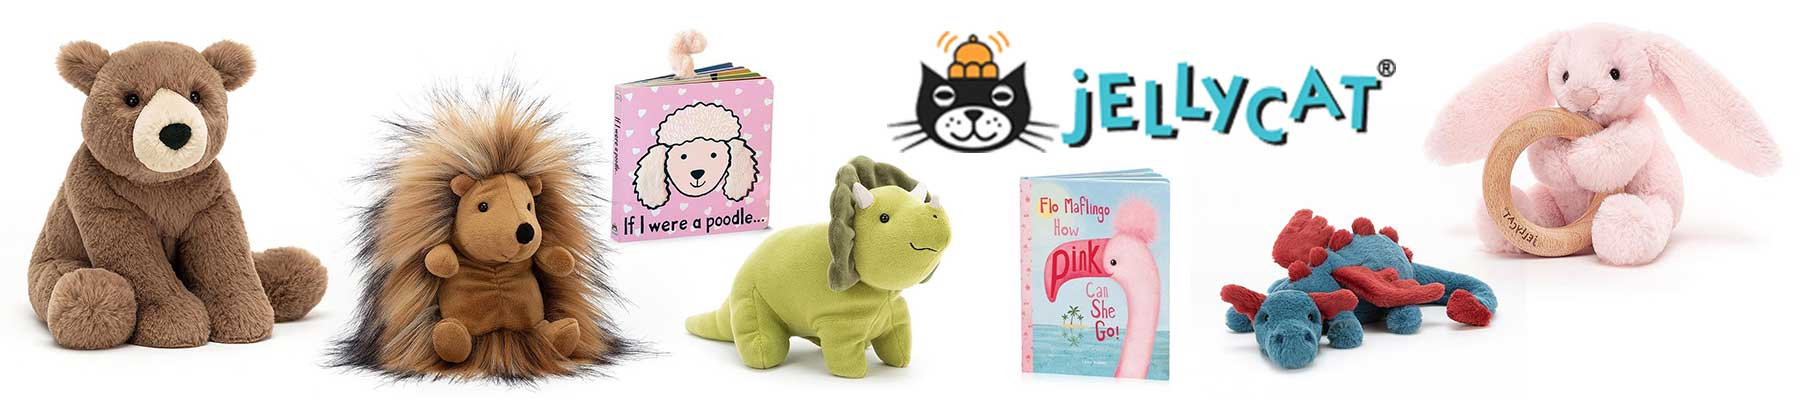 Jellycat collection of stuffed animals. Our store is in Canada.